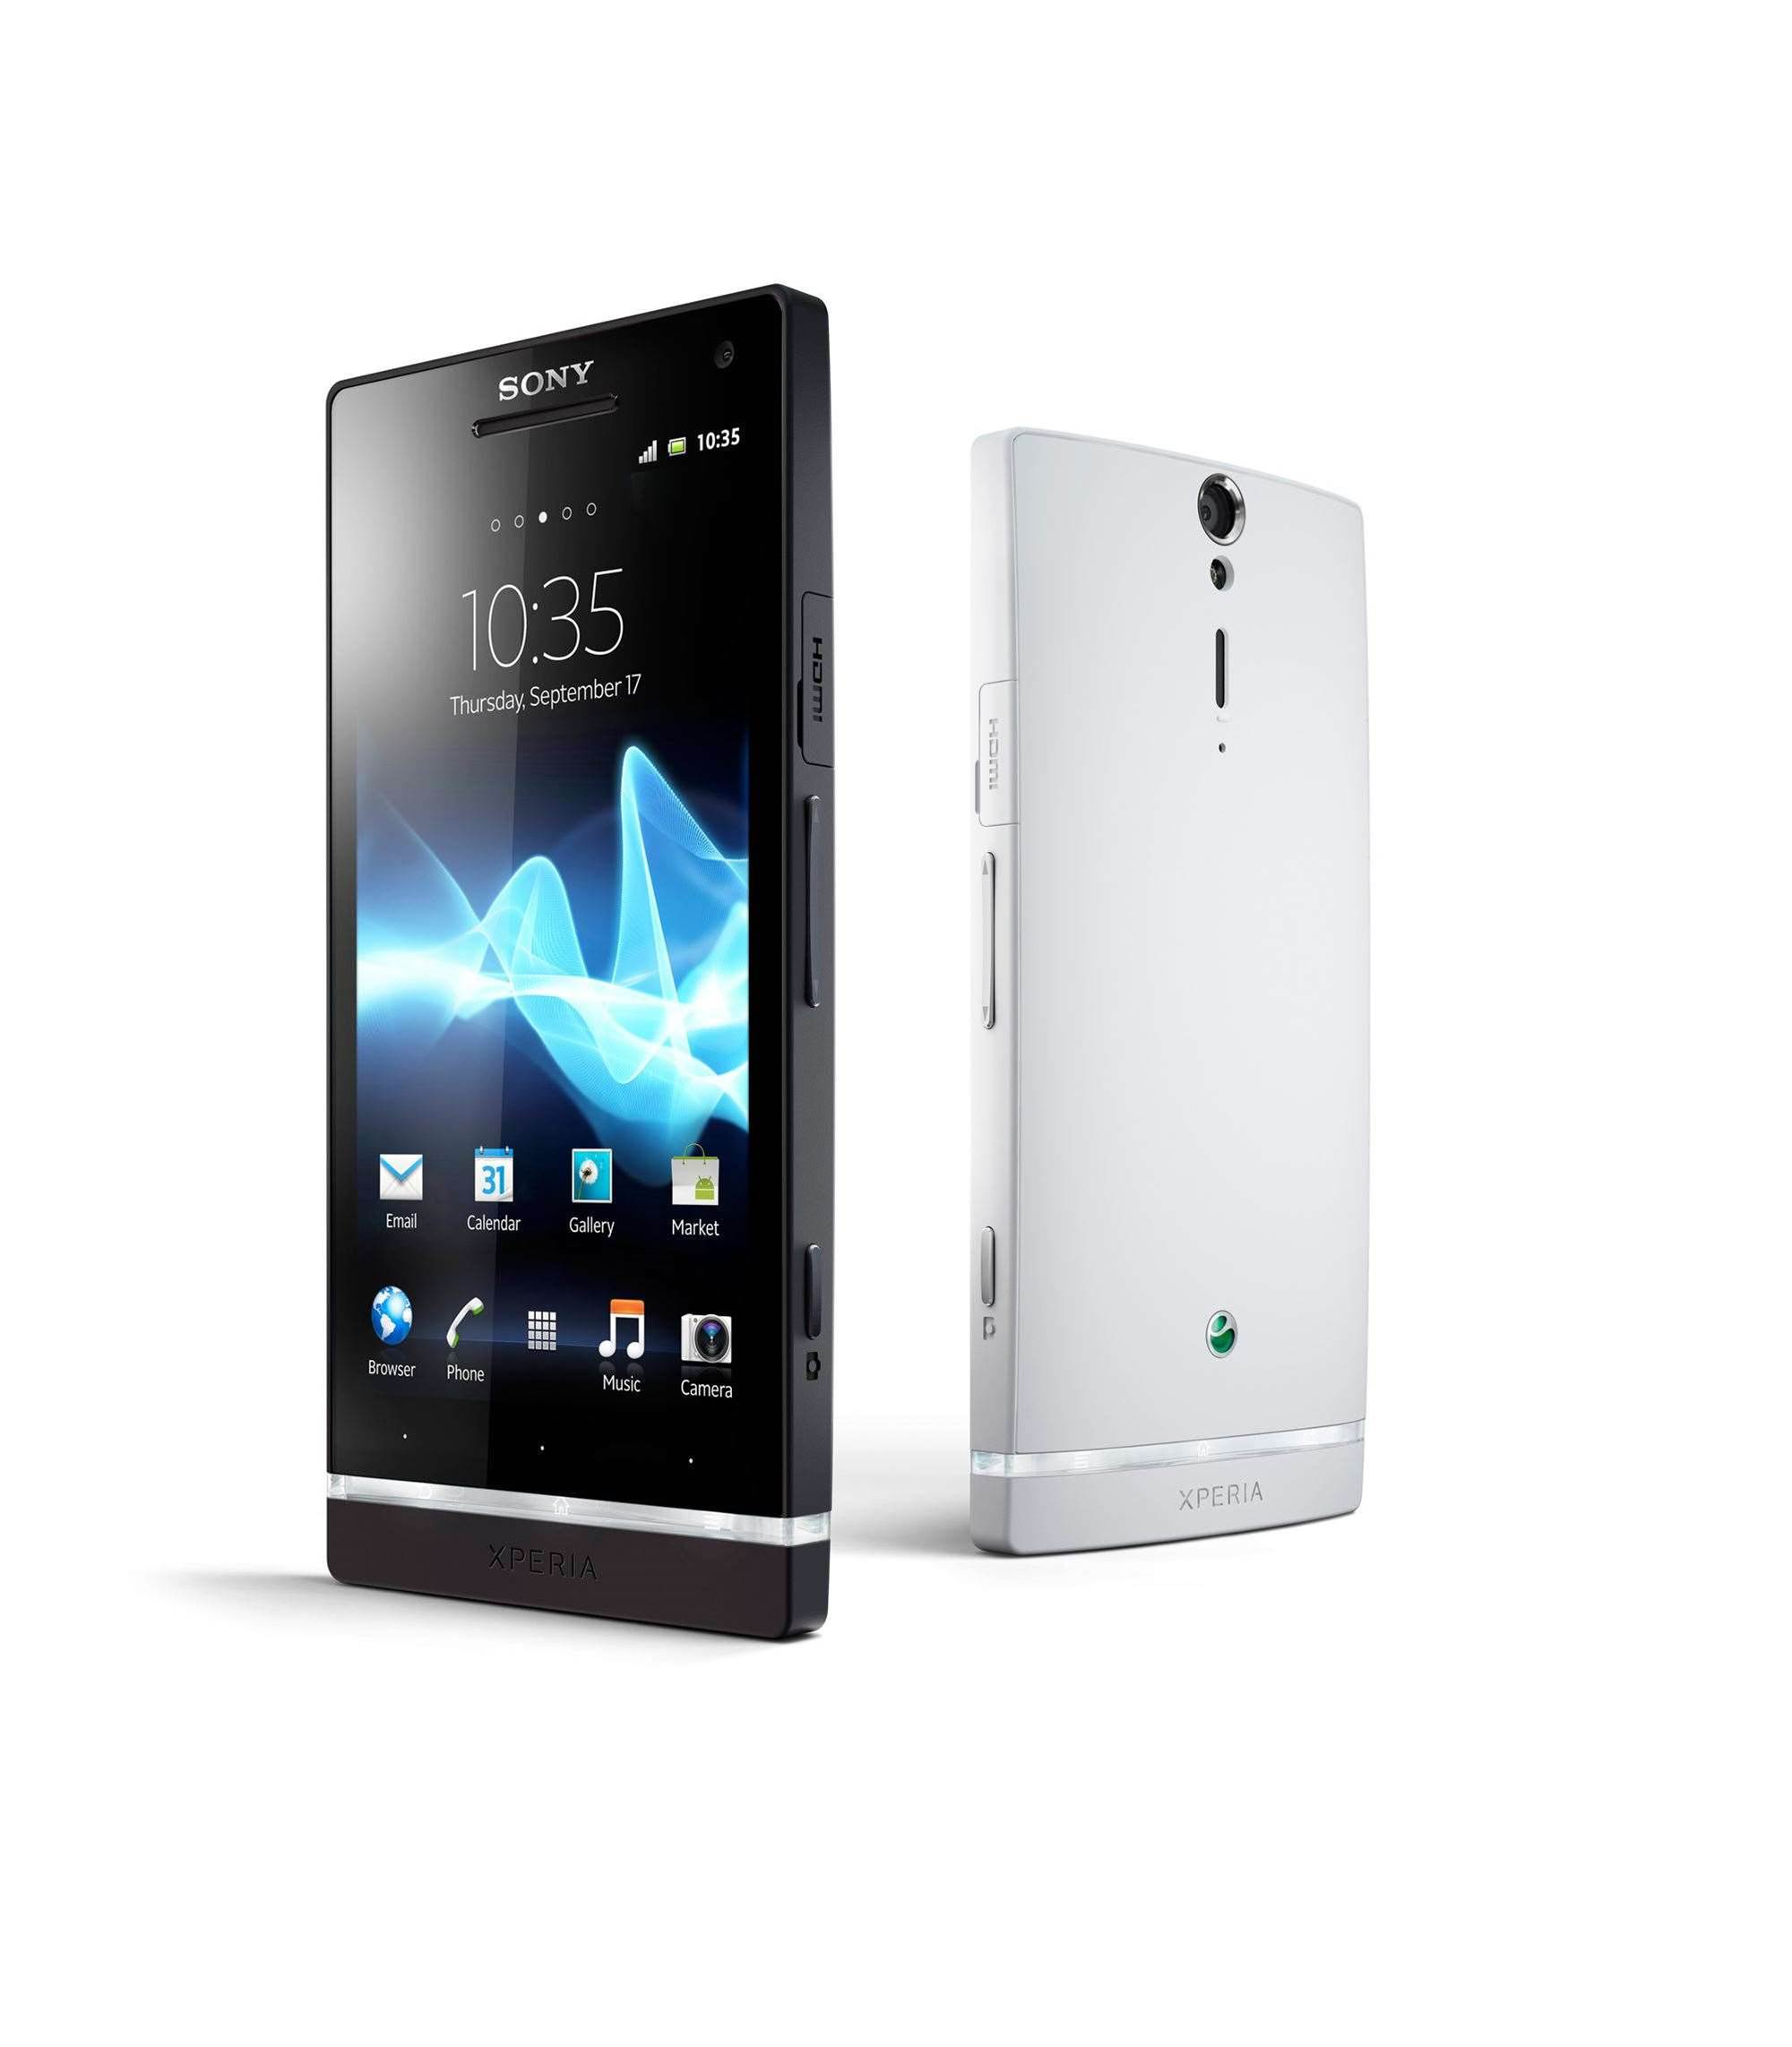 Reviewed: Sony Xperia S smartphone